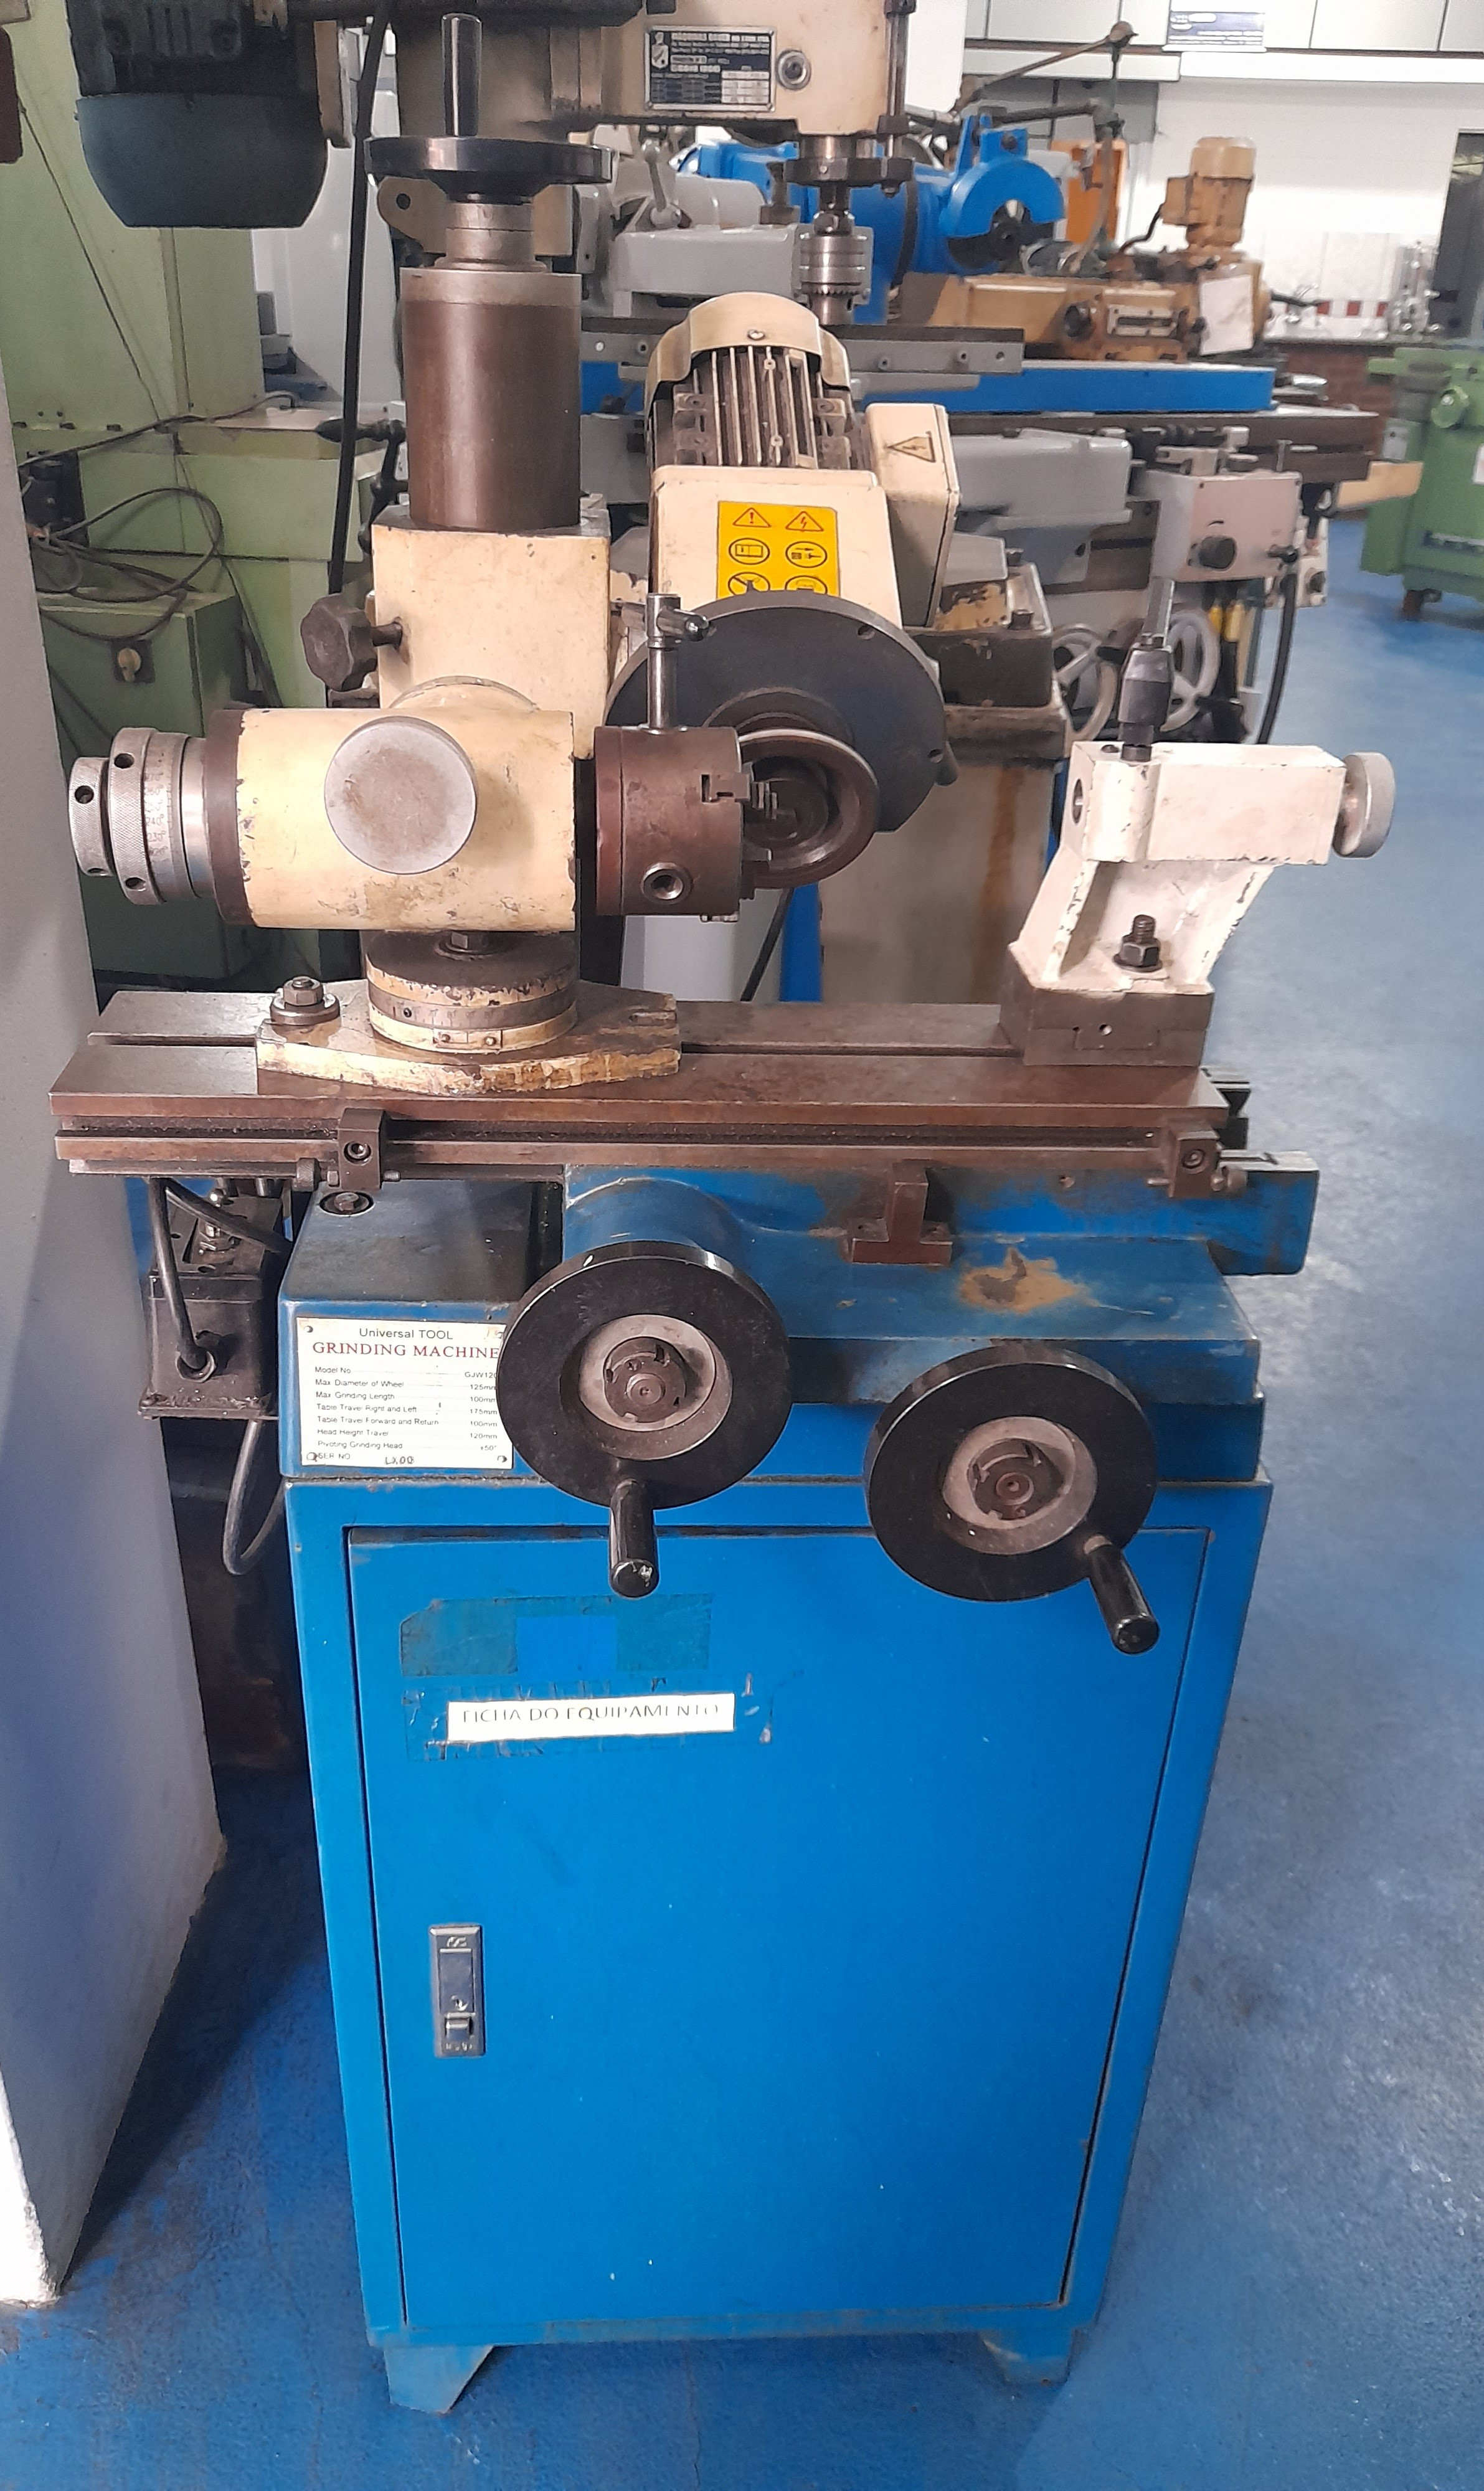 Afiadora Grinding Machine